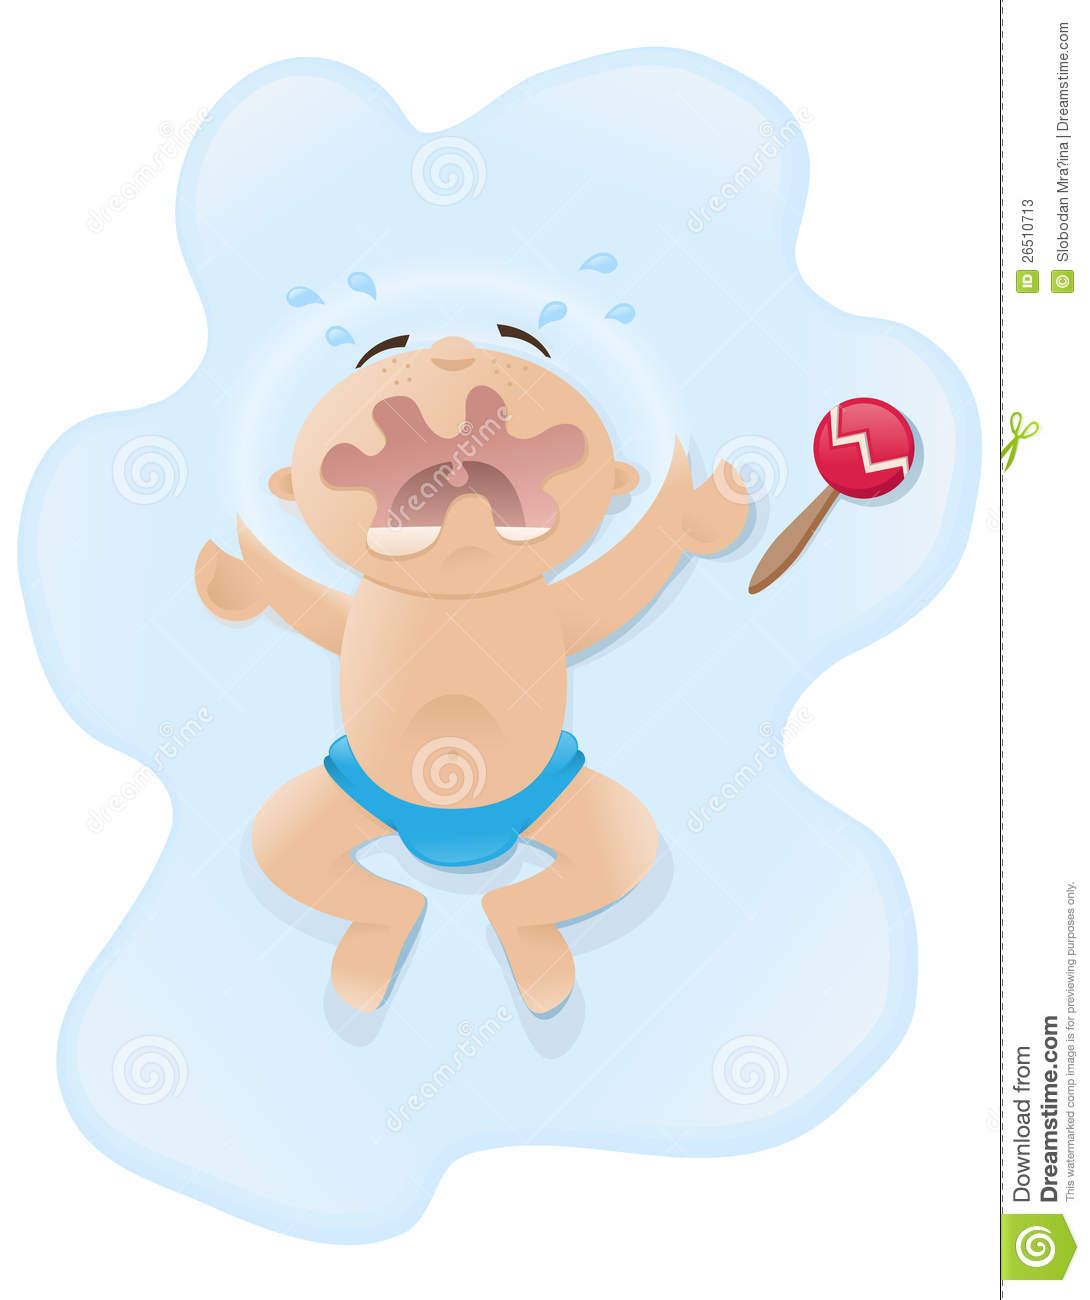 Crying Baby Illustration Stock Photos - Image: 26510713